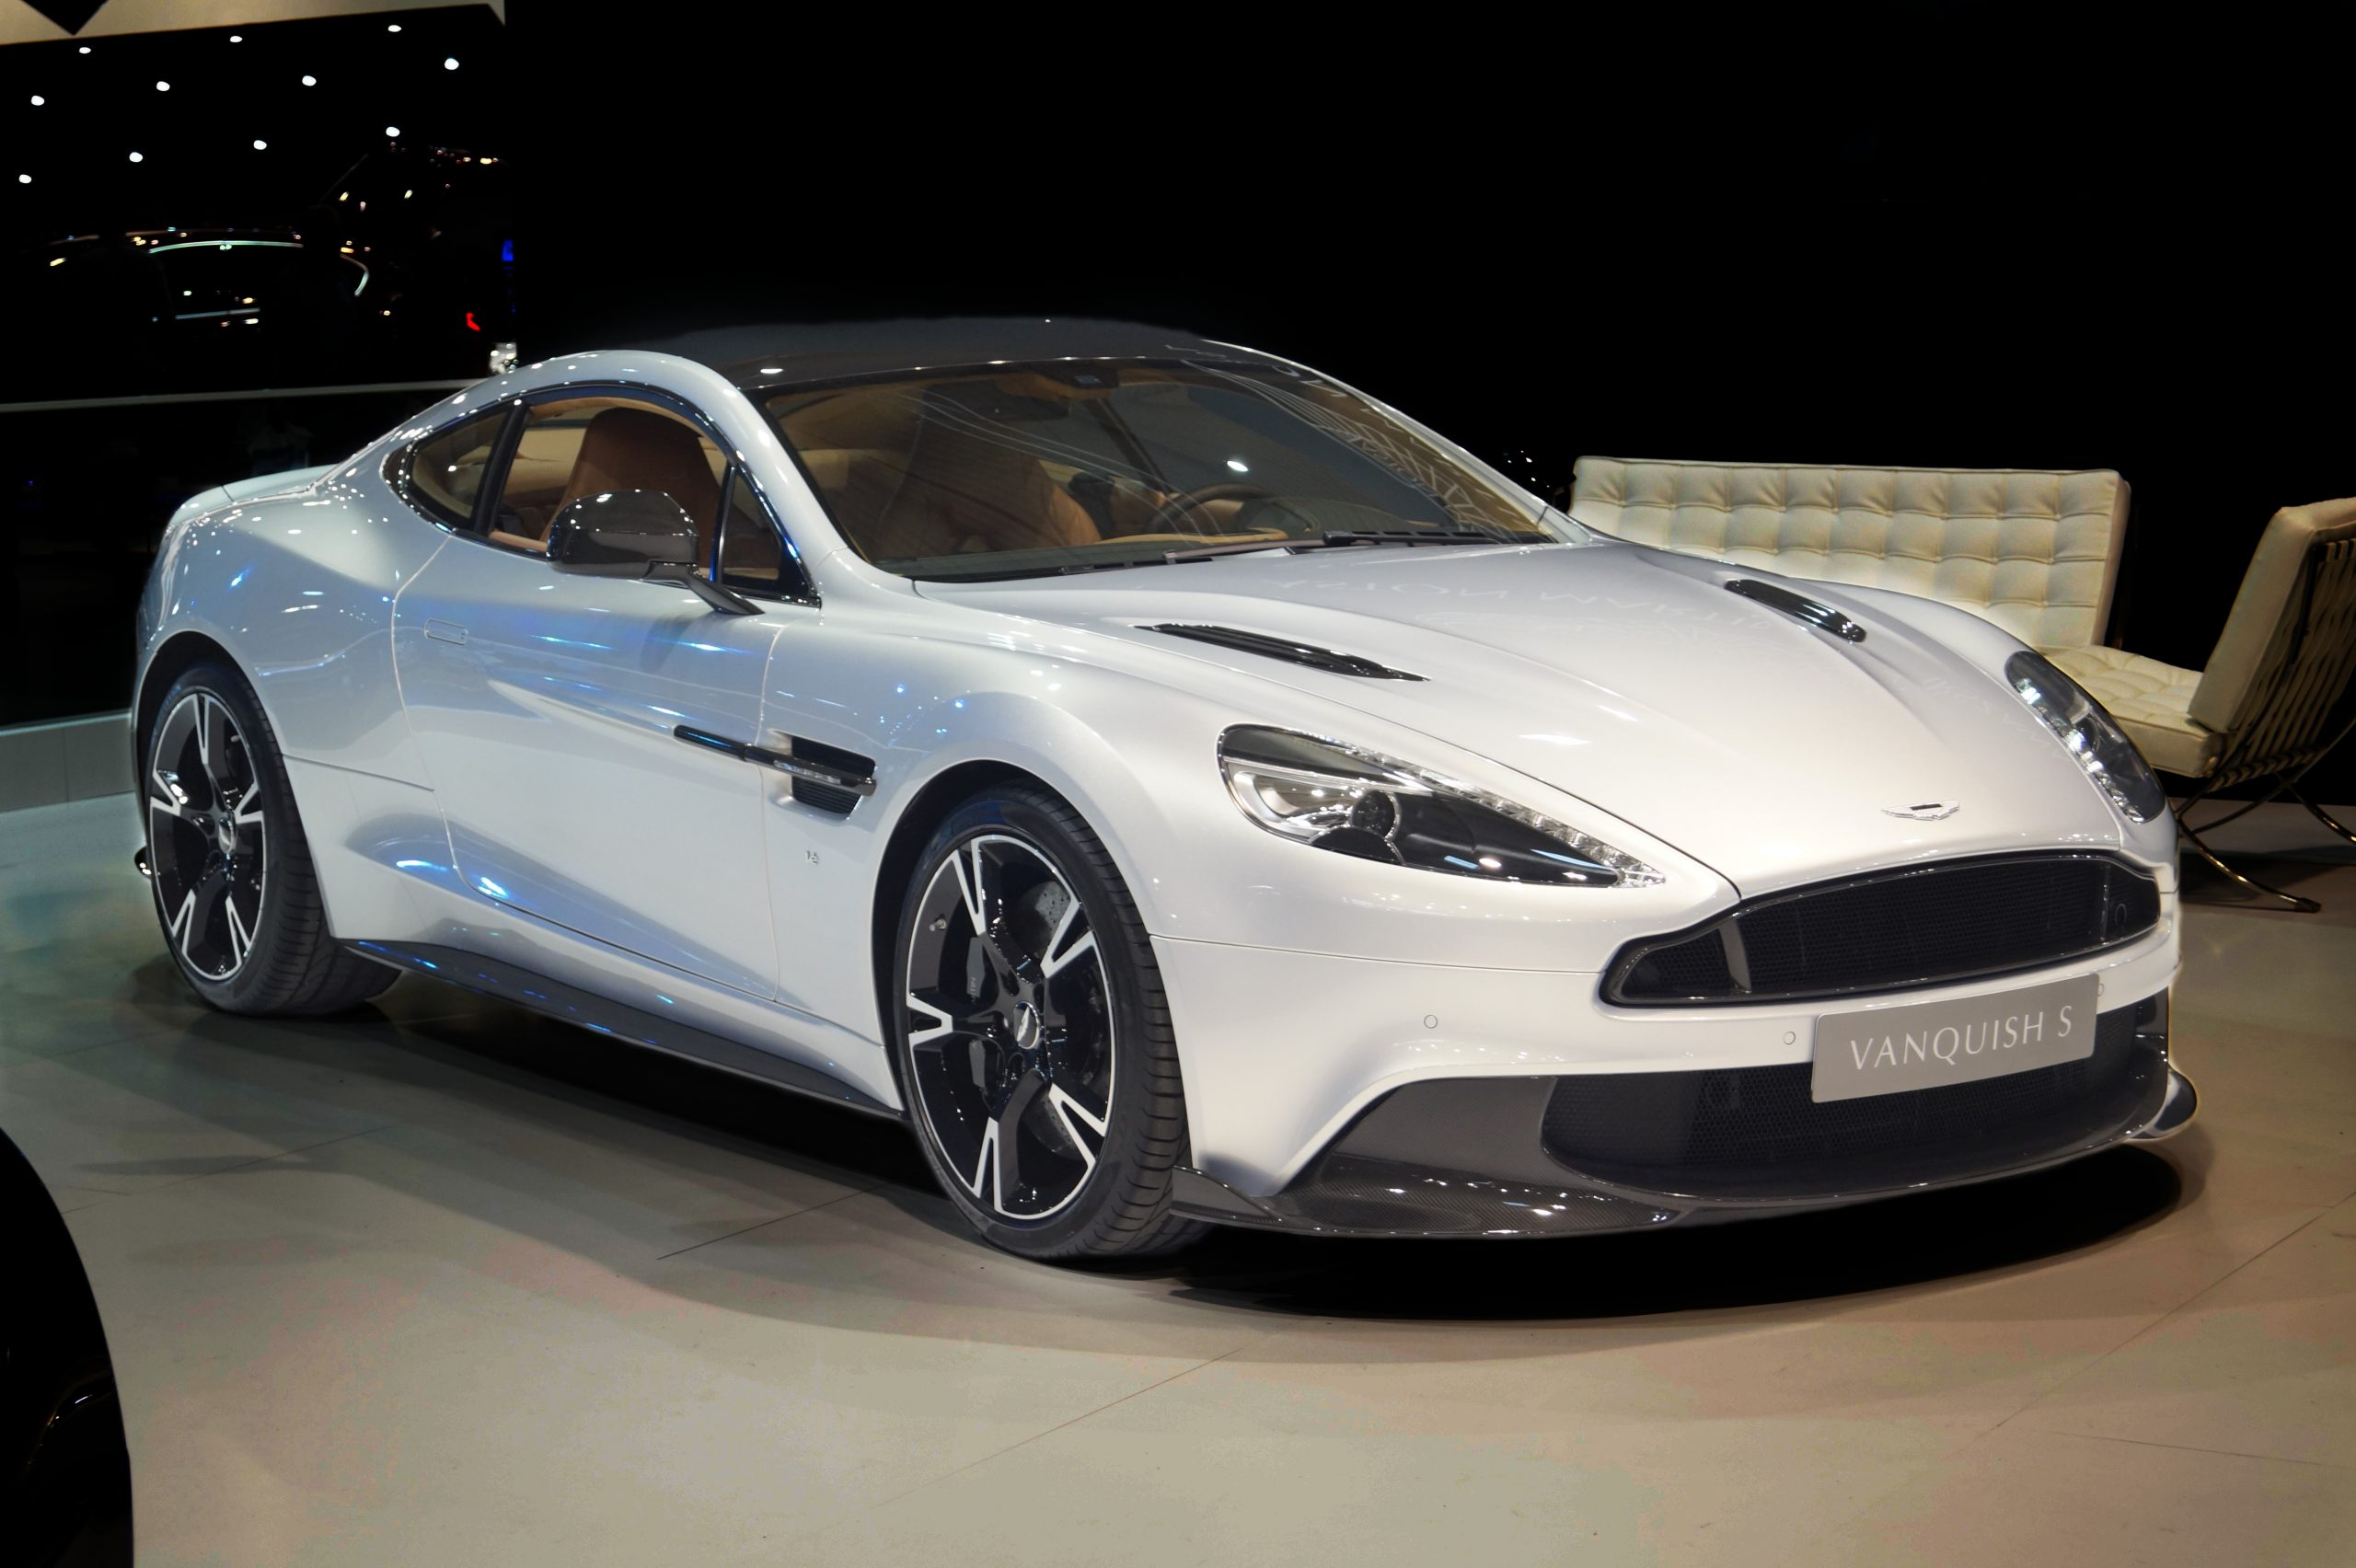 Aston Martin Vanquish - Dream Cars of the Past and Present